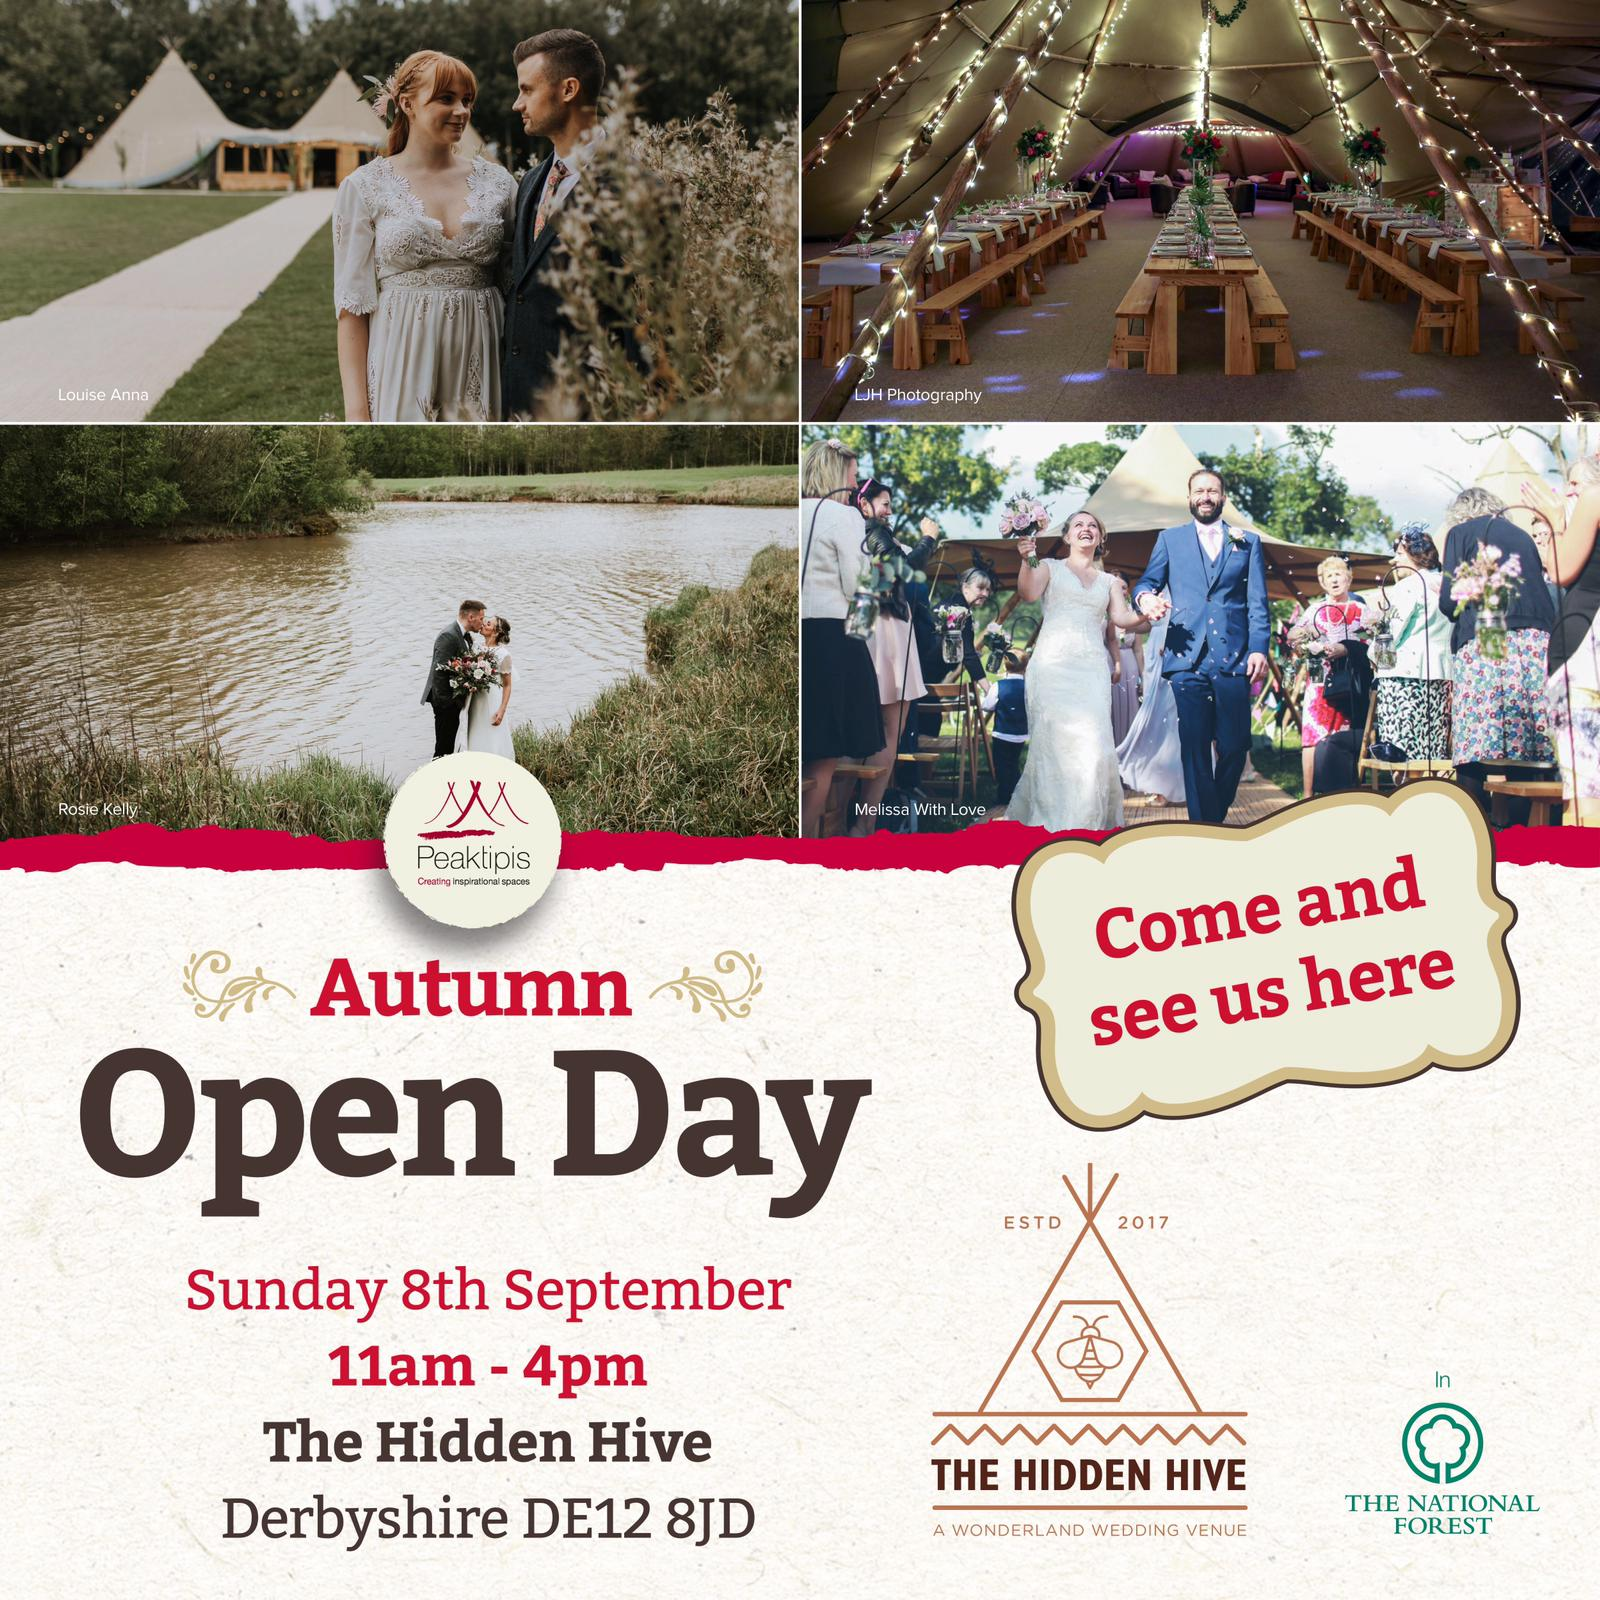 Can't wait to meet more amazing couples at the Hidden Hive open day in September. Pop along and find out more about humanist ceremonies and this fab venue